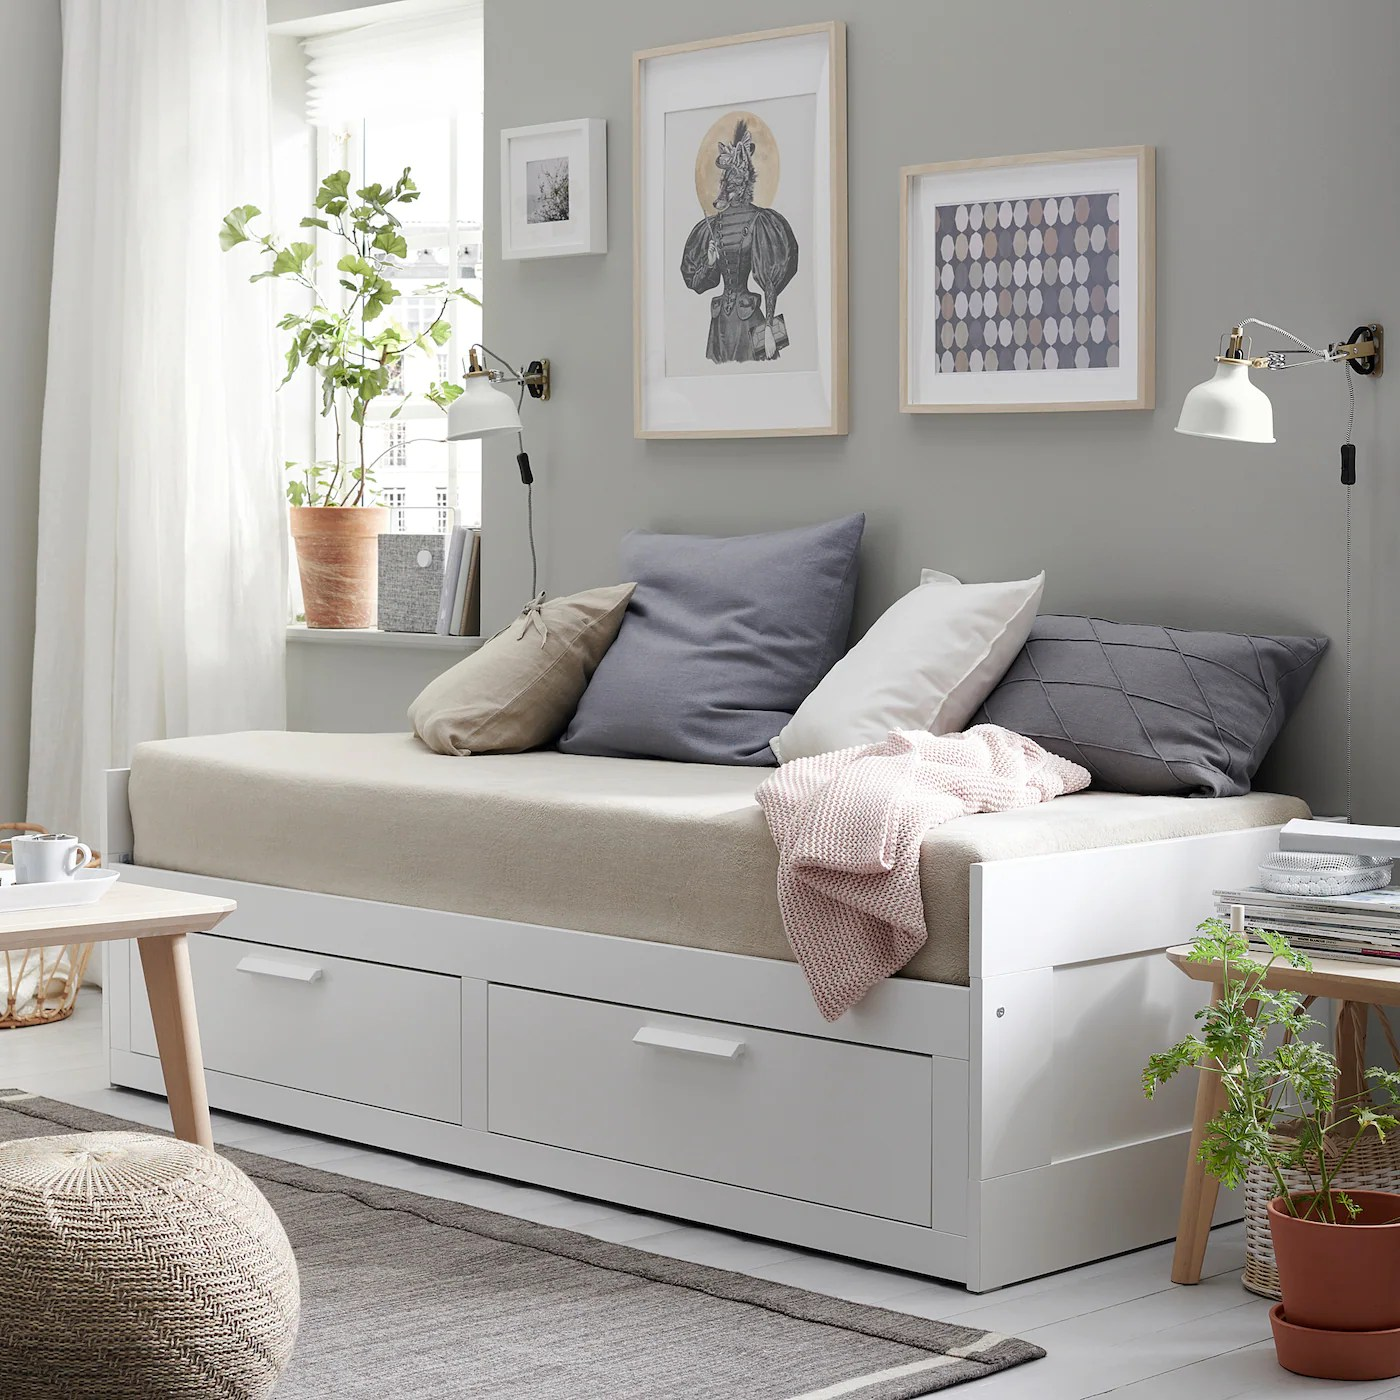 Brimnes Daybed Frame With 2 Drawers White Ikea